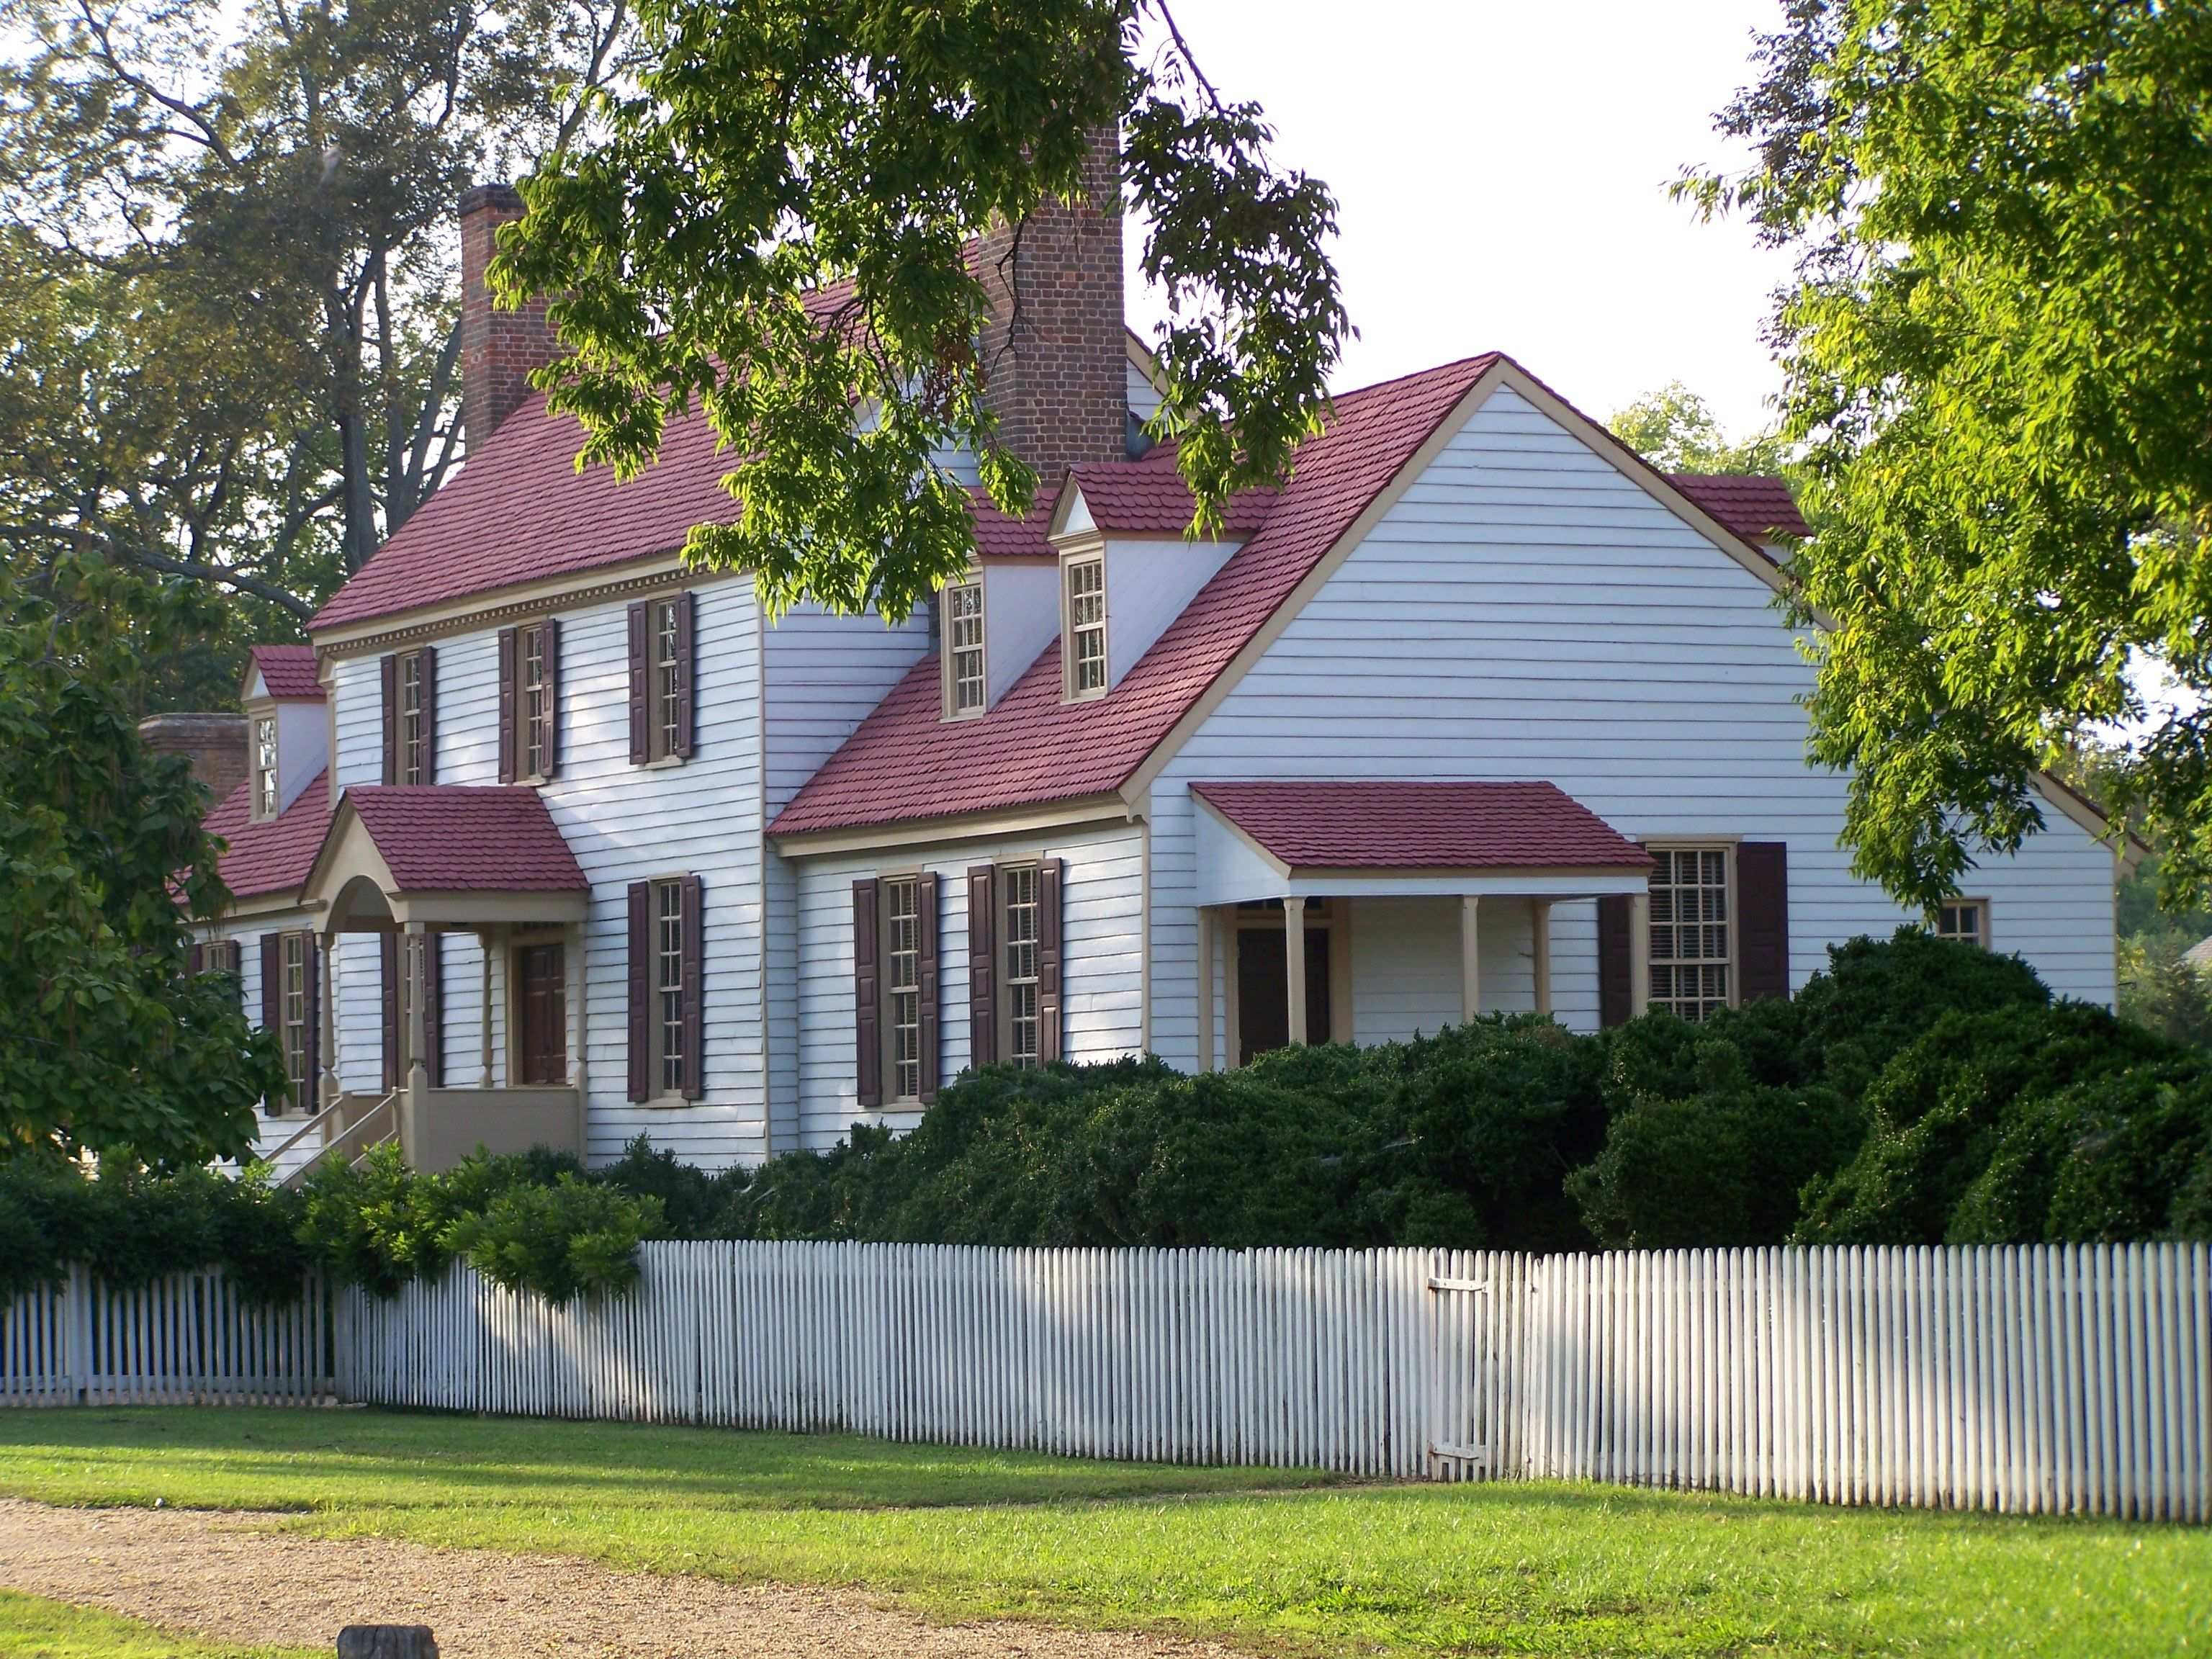 The homes in Colonial Williamsburg VA Colonial